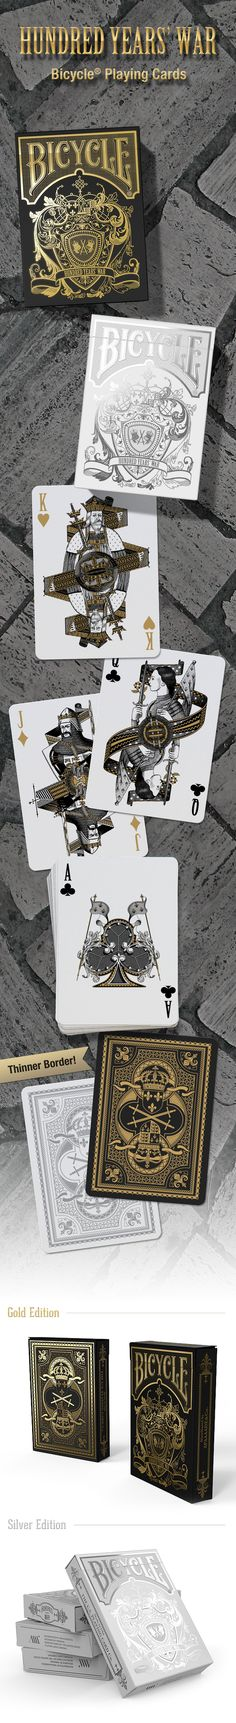 Classy : Bicycle Hundred Years' War Playing Cards